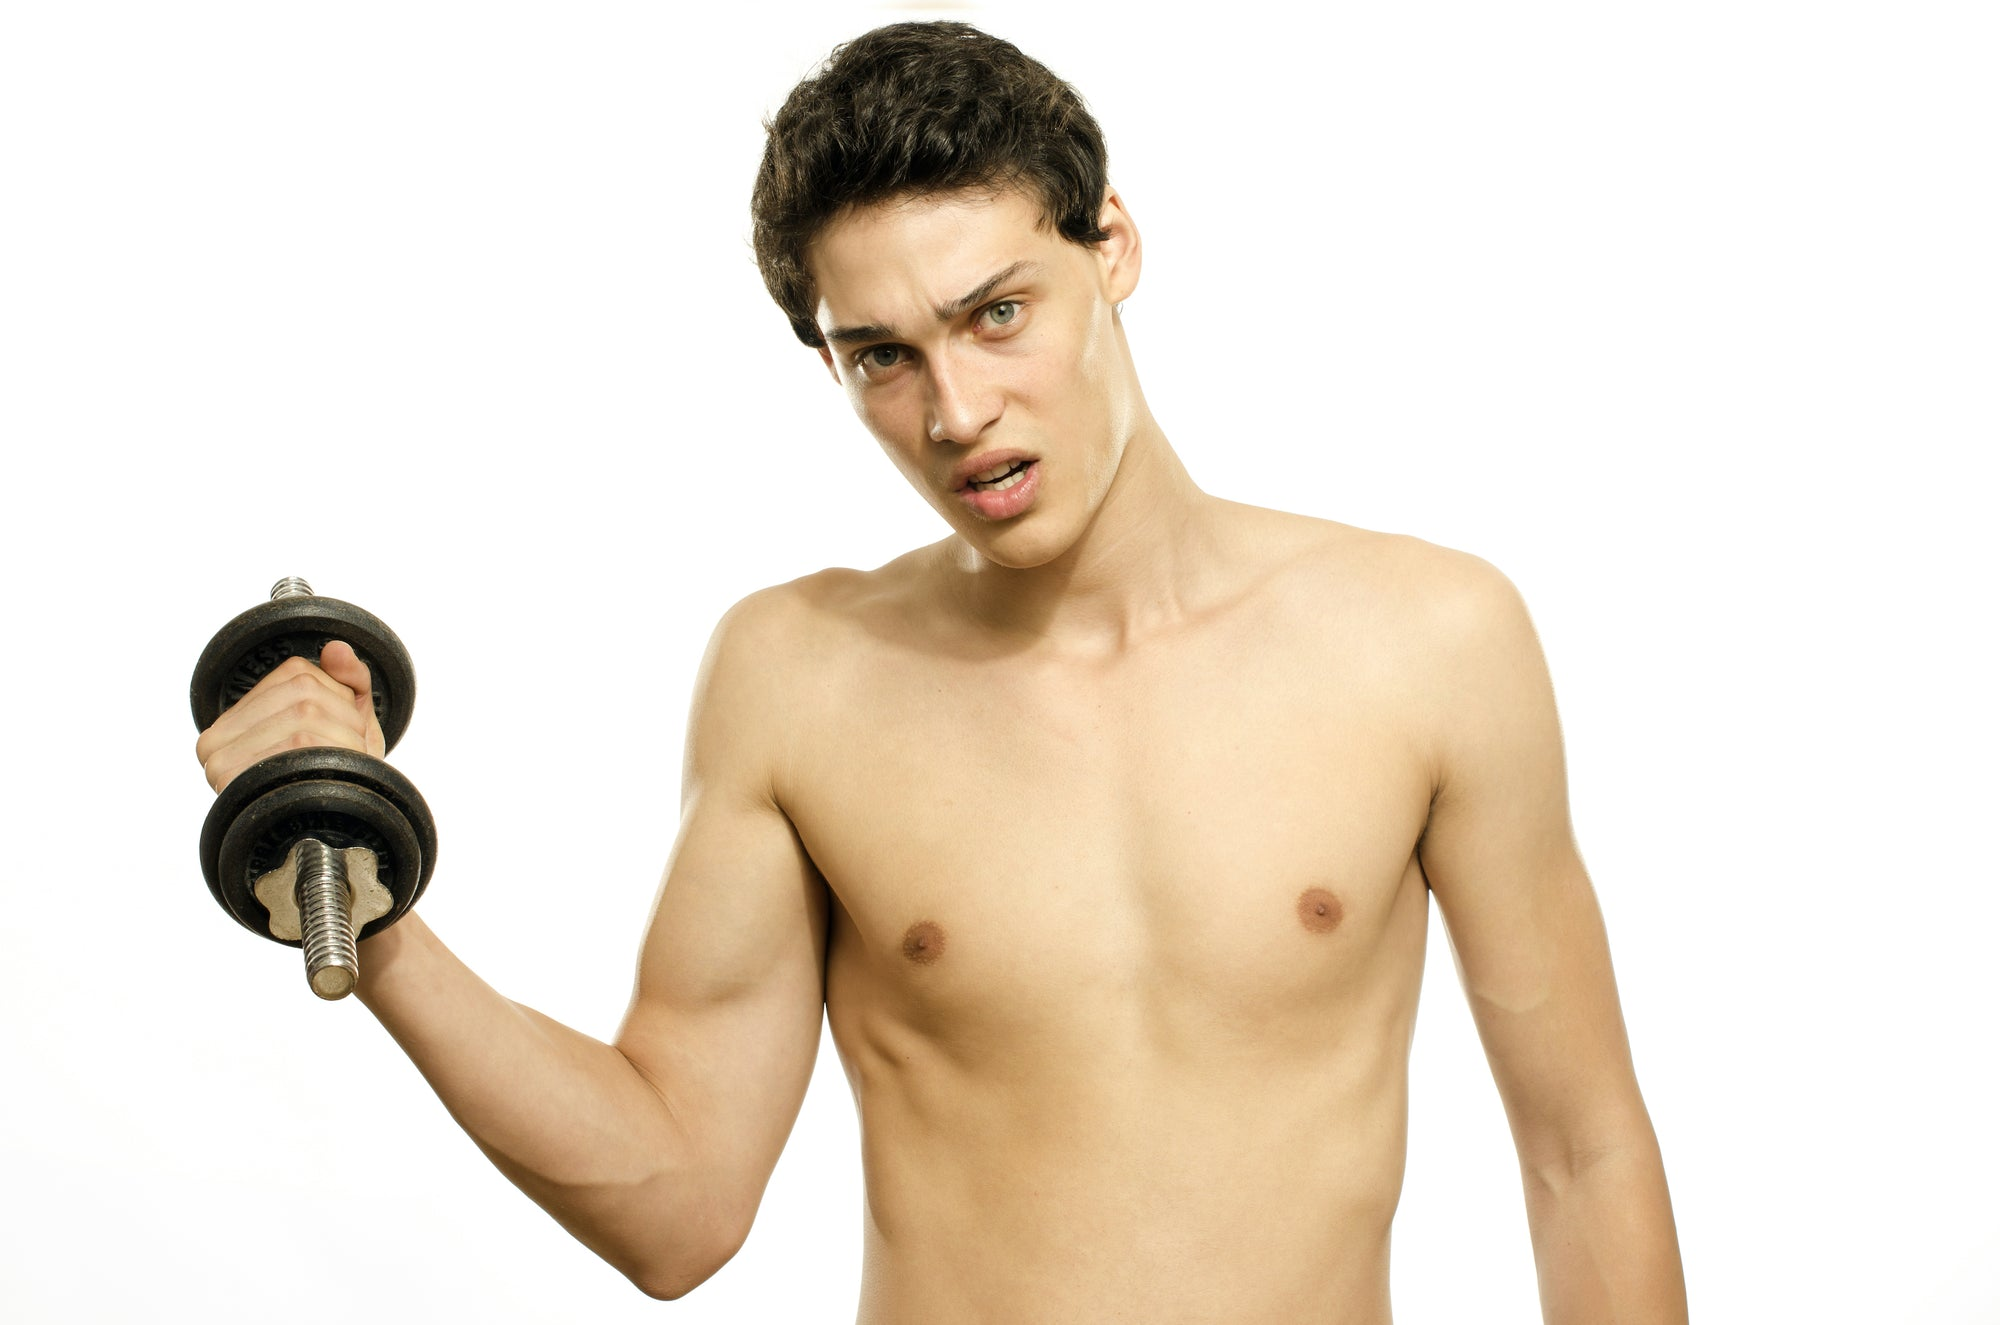 How to Lose Muscle Mass and Get Skinny